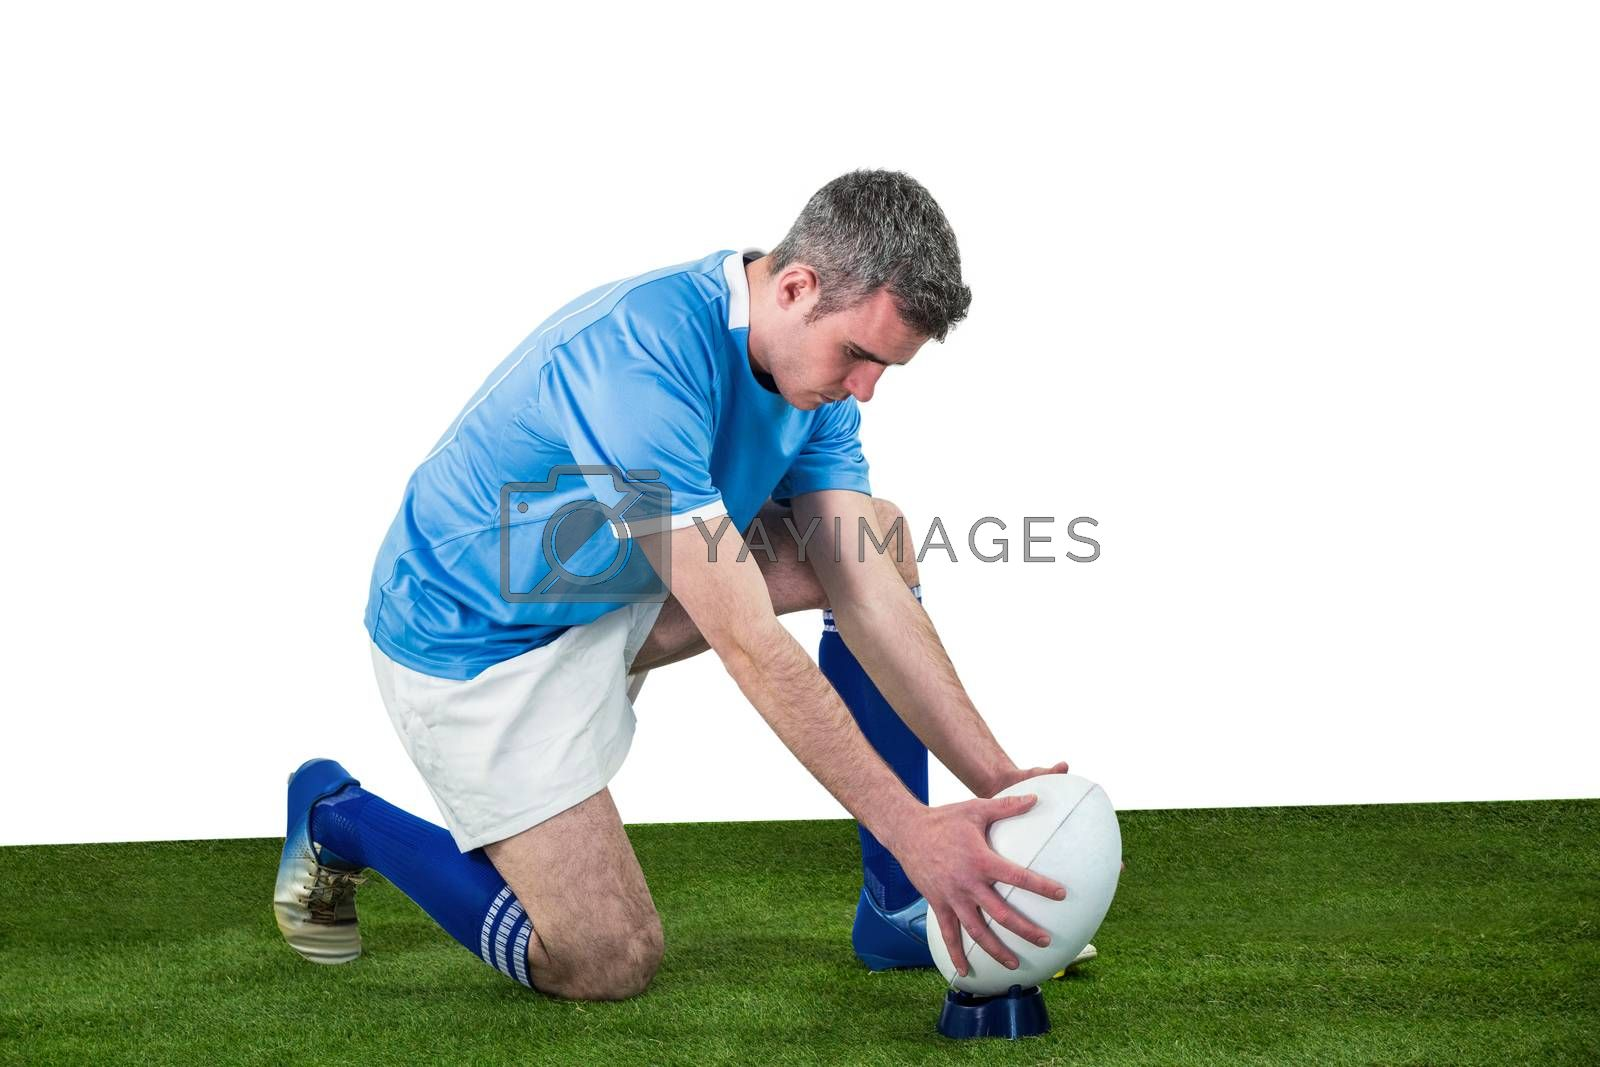 Royalty free image of Rugby player ready to make a drop kick by Wavebreakmedia